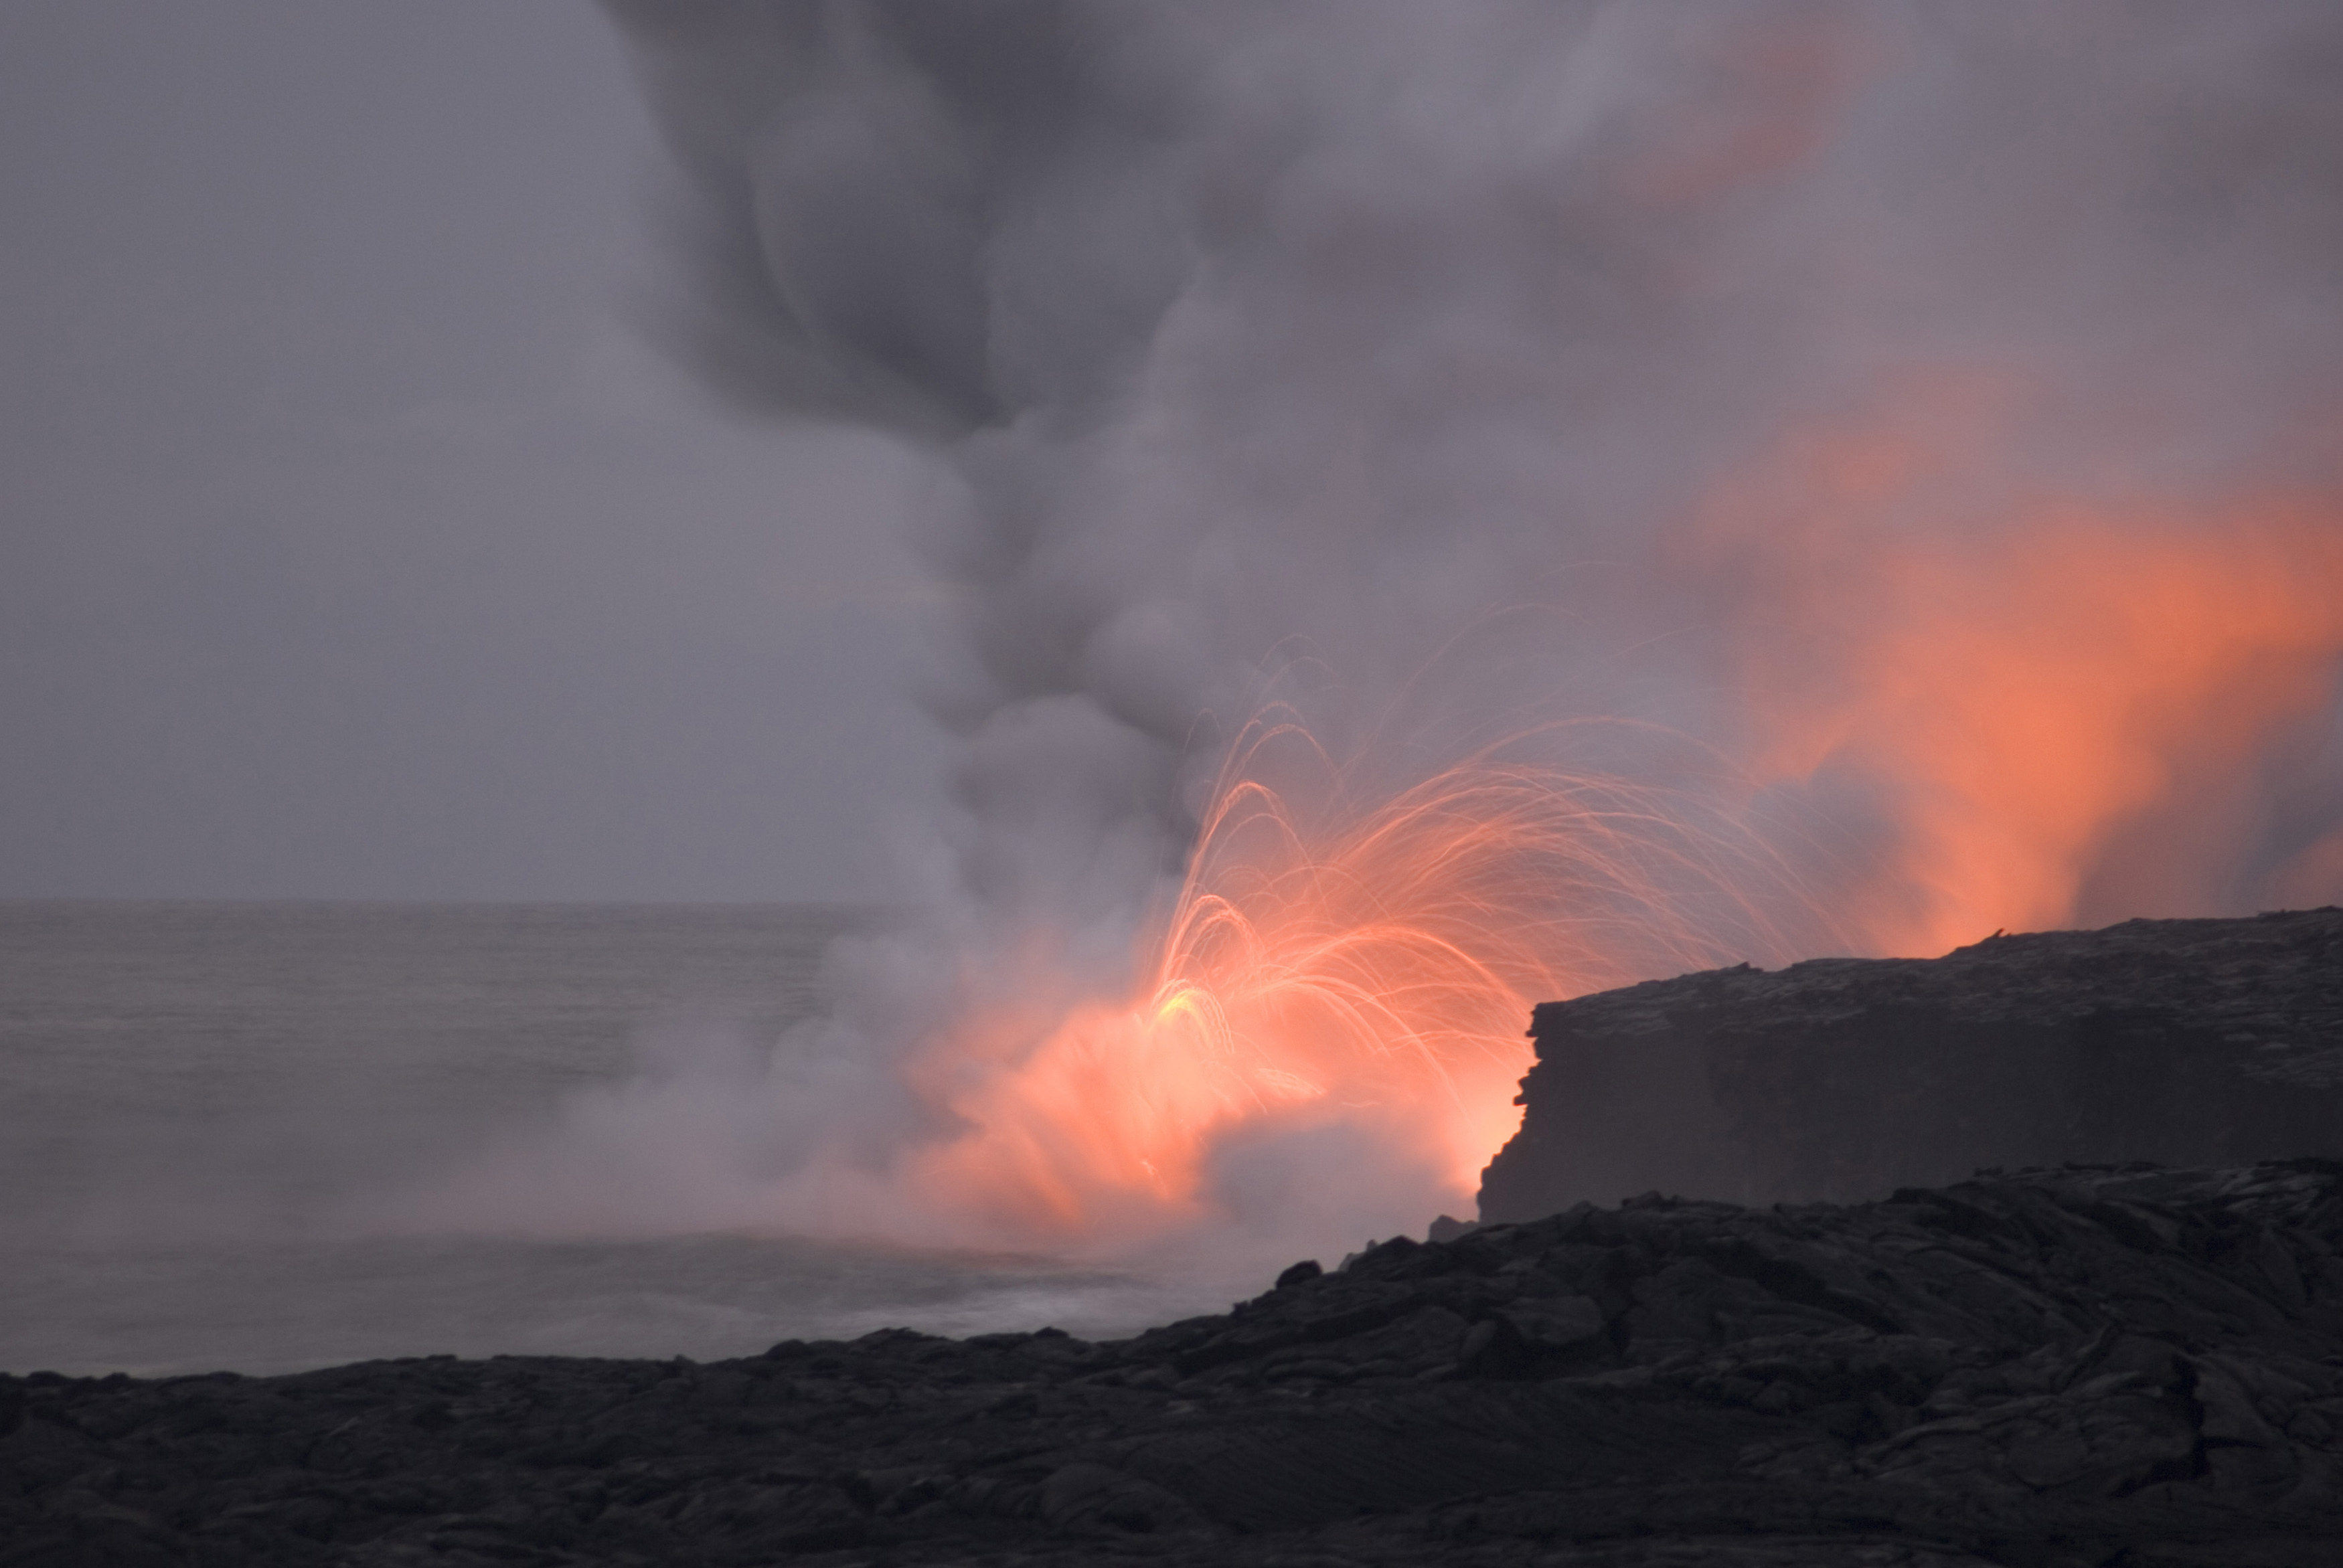 red hot lava shooting through the air into the sea makes a spectacle for travellers visiting hawaiiis big island, Hawaii, USA